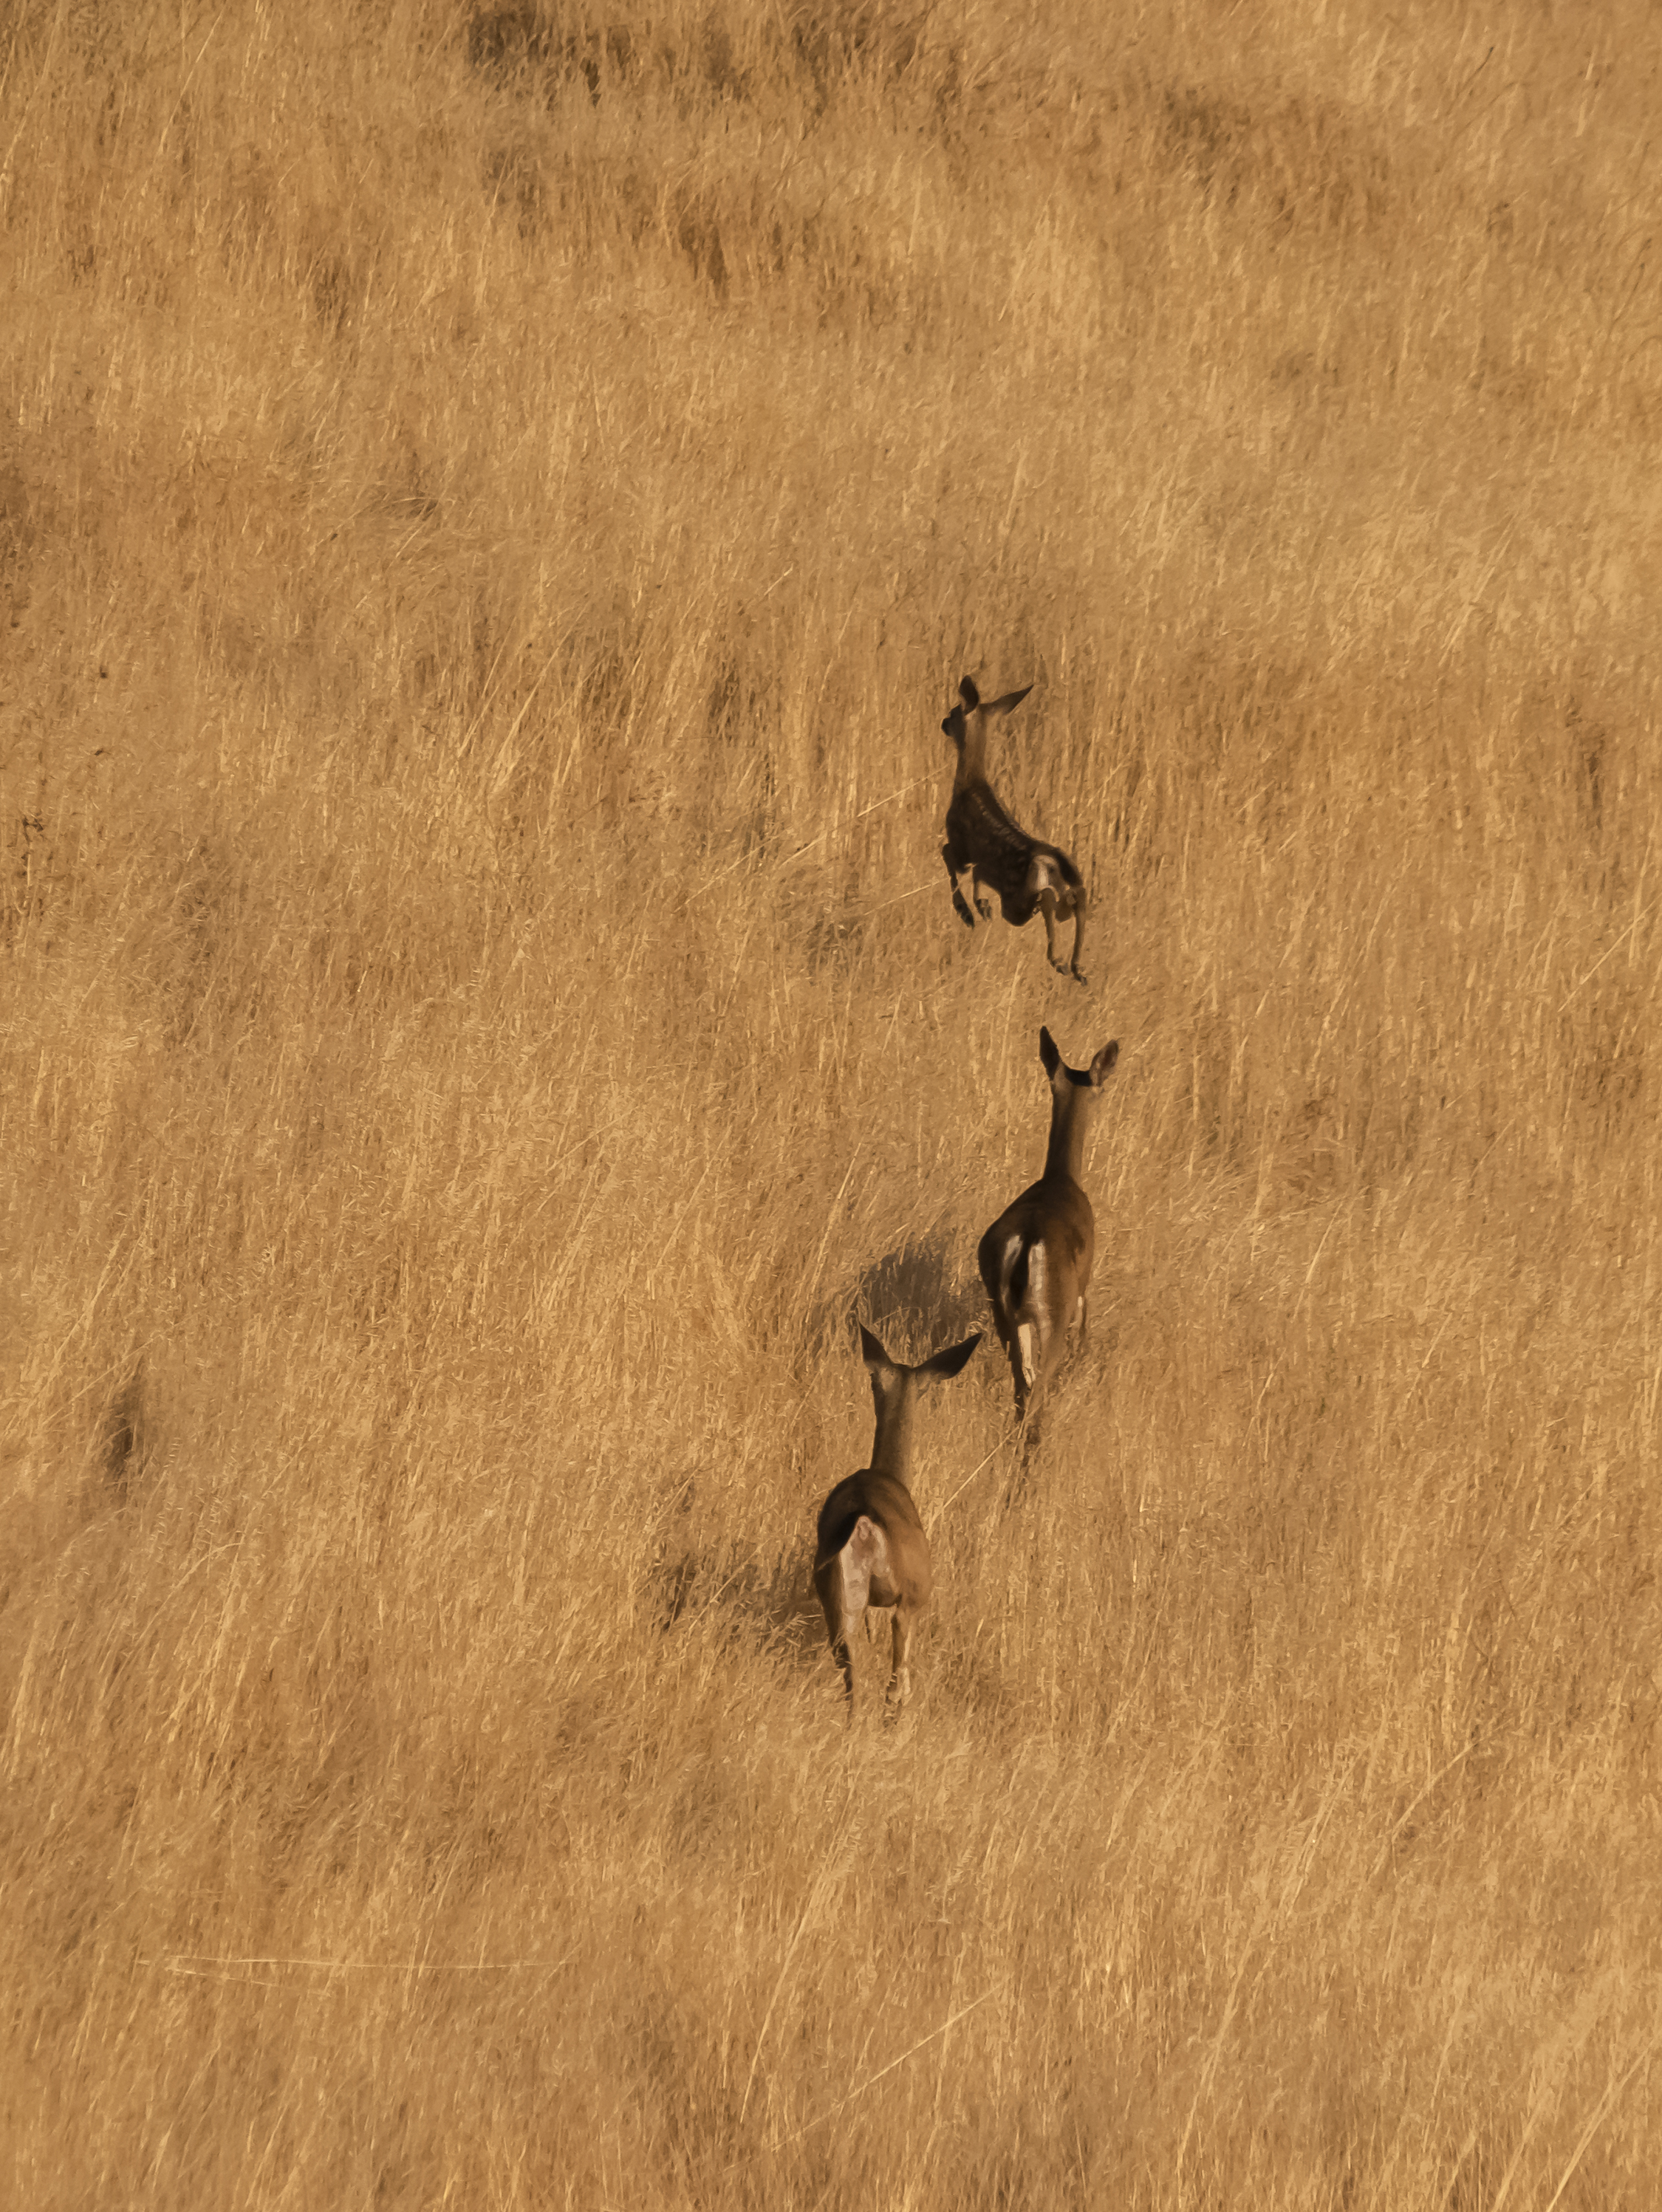 Deer Family, Coyote Valley Open Space Preserve, Morgan Hill, California